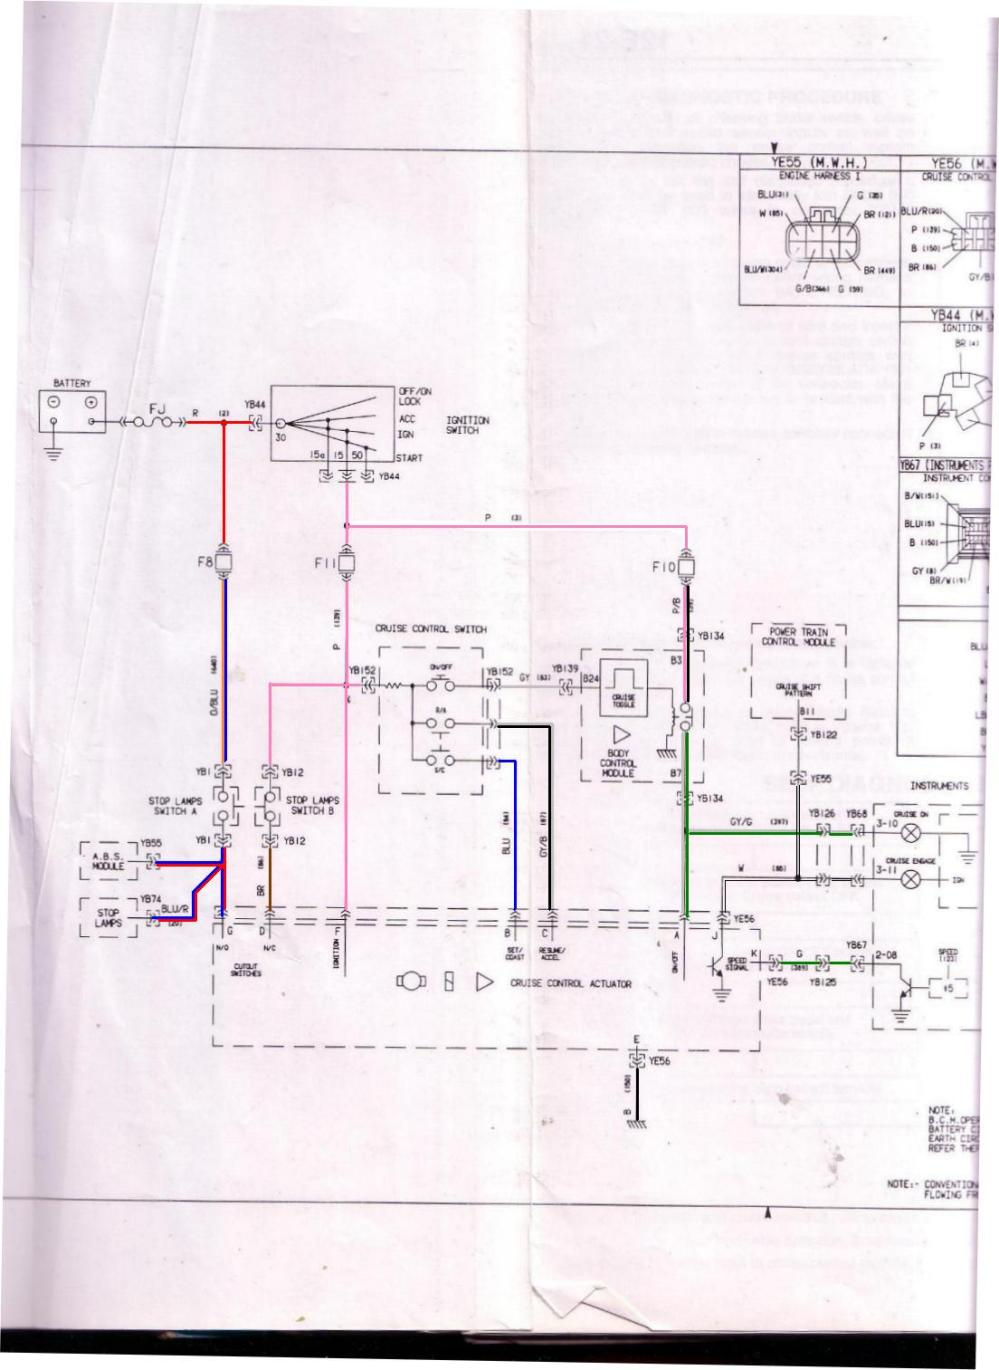 medium resolution of vn power window wiring diagram wiring diagram todaysvn power window wiring diagram simple wiring diagram 1977